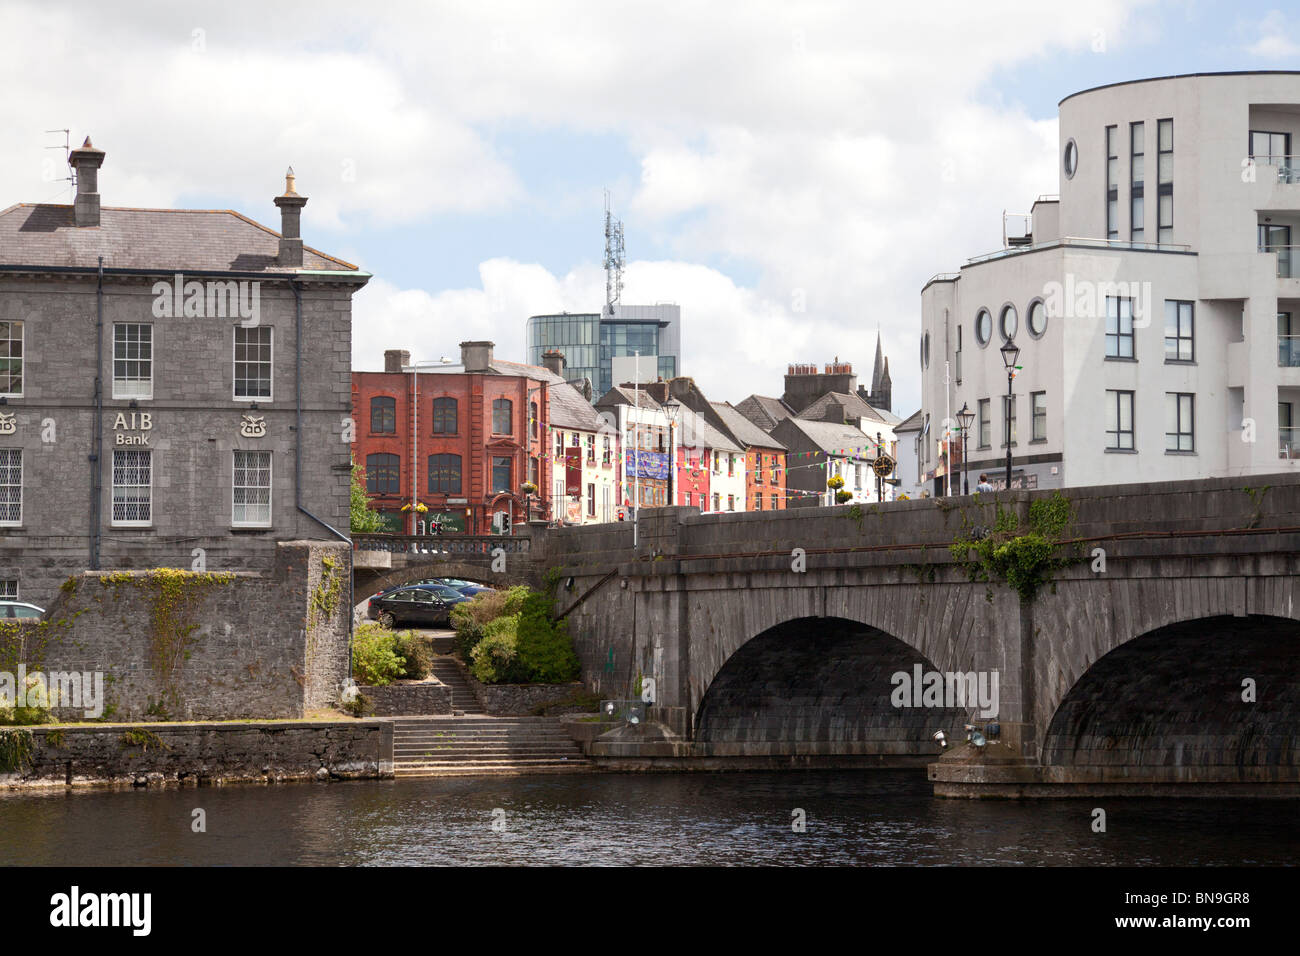 Town centre with bridge across the River Shannon, Athlone